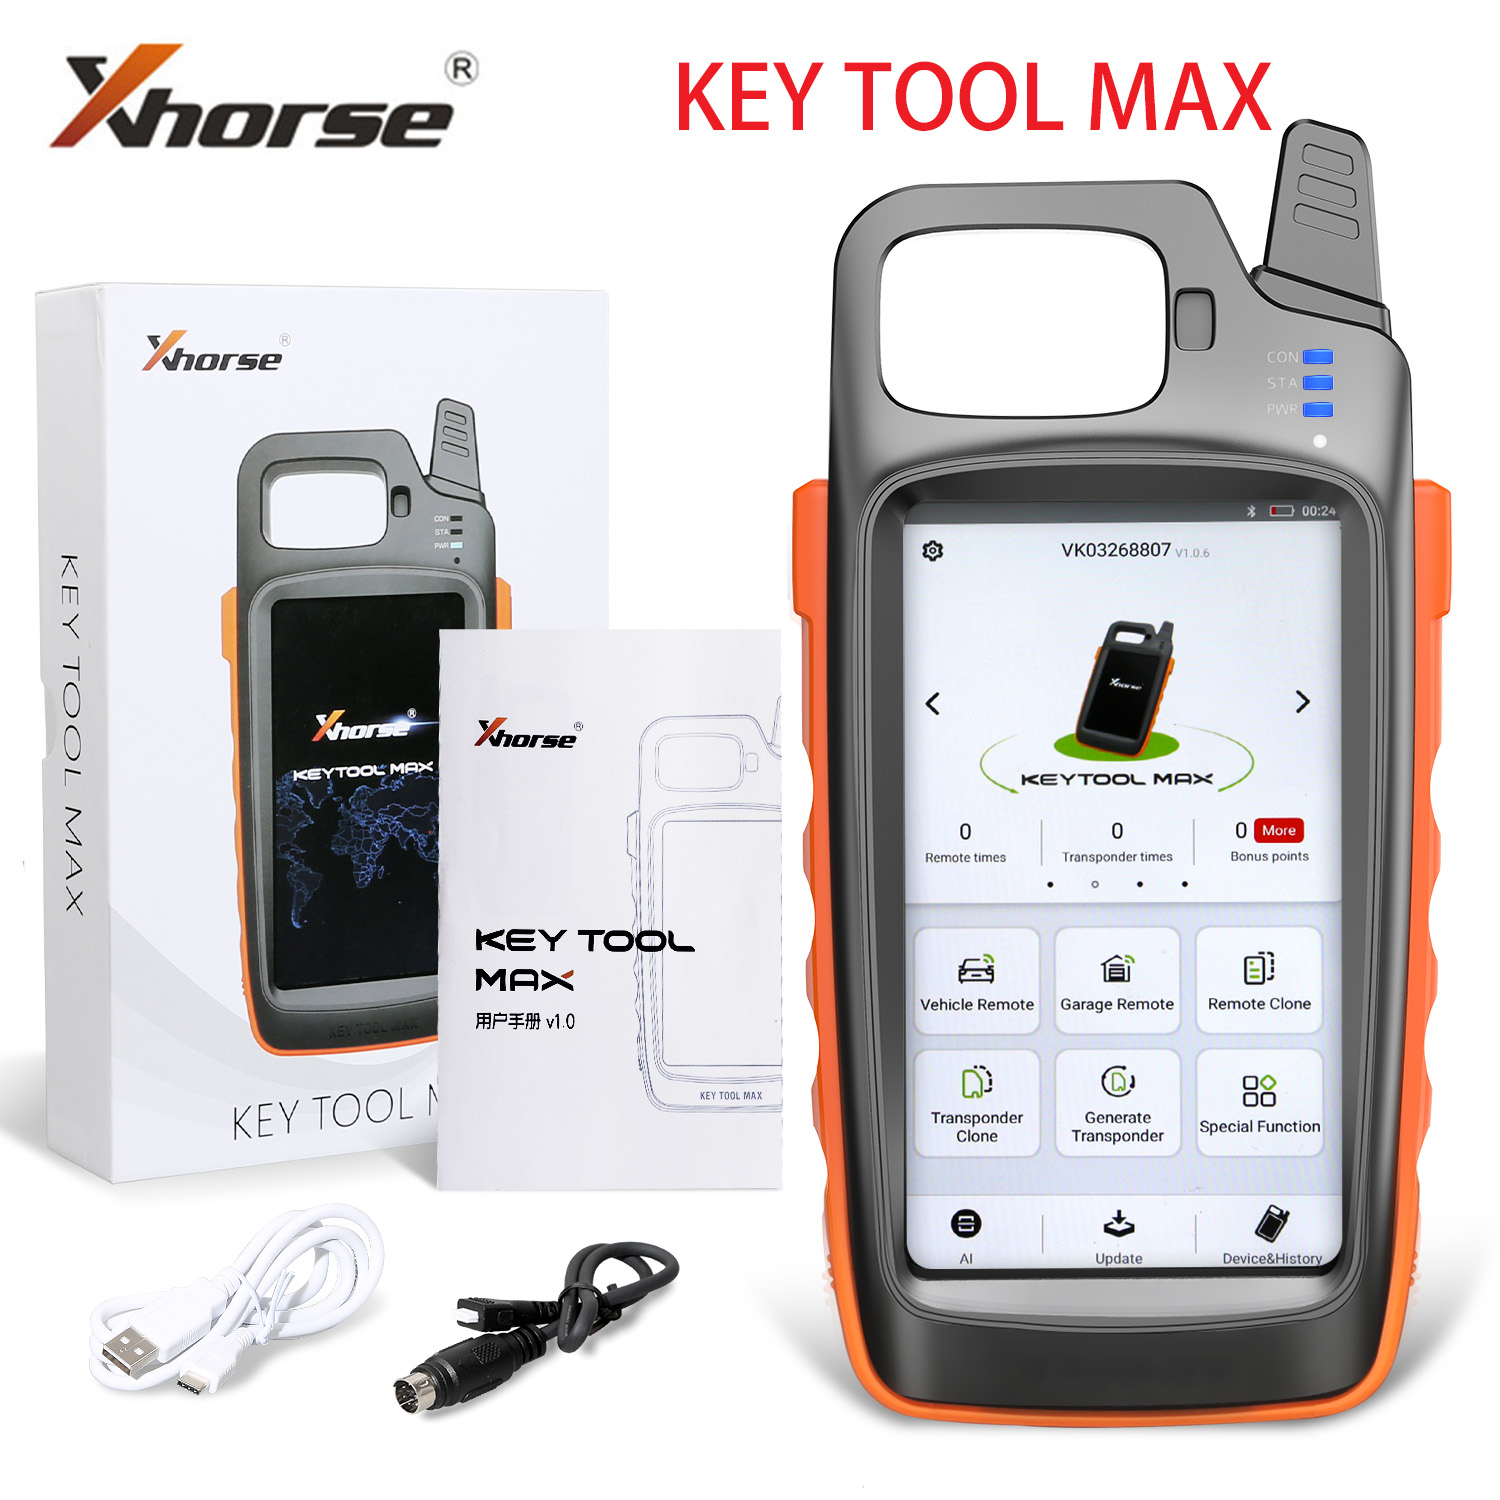 Xhorse VVDI <font><b>Key</b></font> Tool Max <font><b>Remote</b></font> <font><b>Programmer</b></font> Support work with Condor Dolphin XP005 image